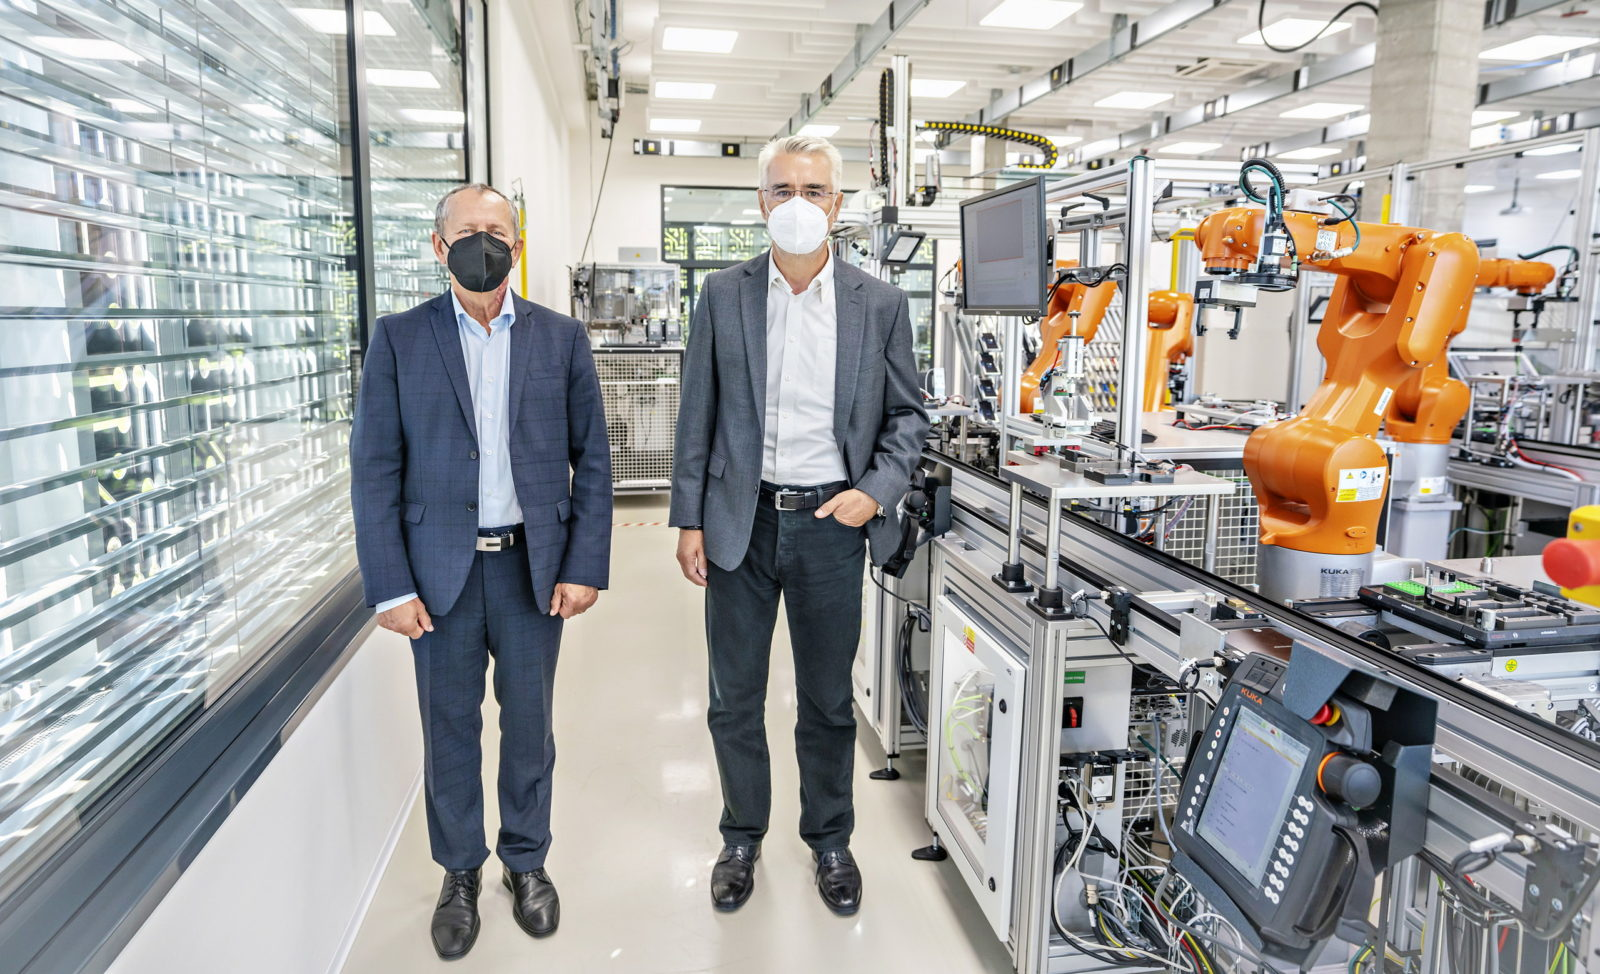 skoda-unveils-innovative-artificial-intelligence-lab-for-car-manufacturing-research